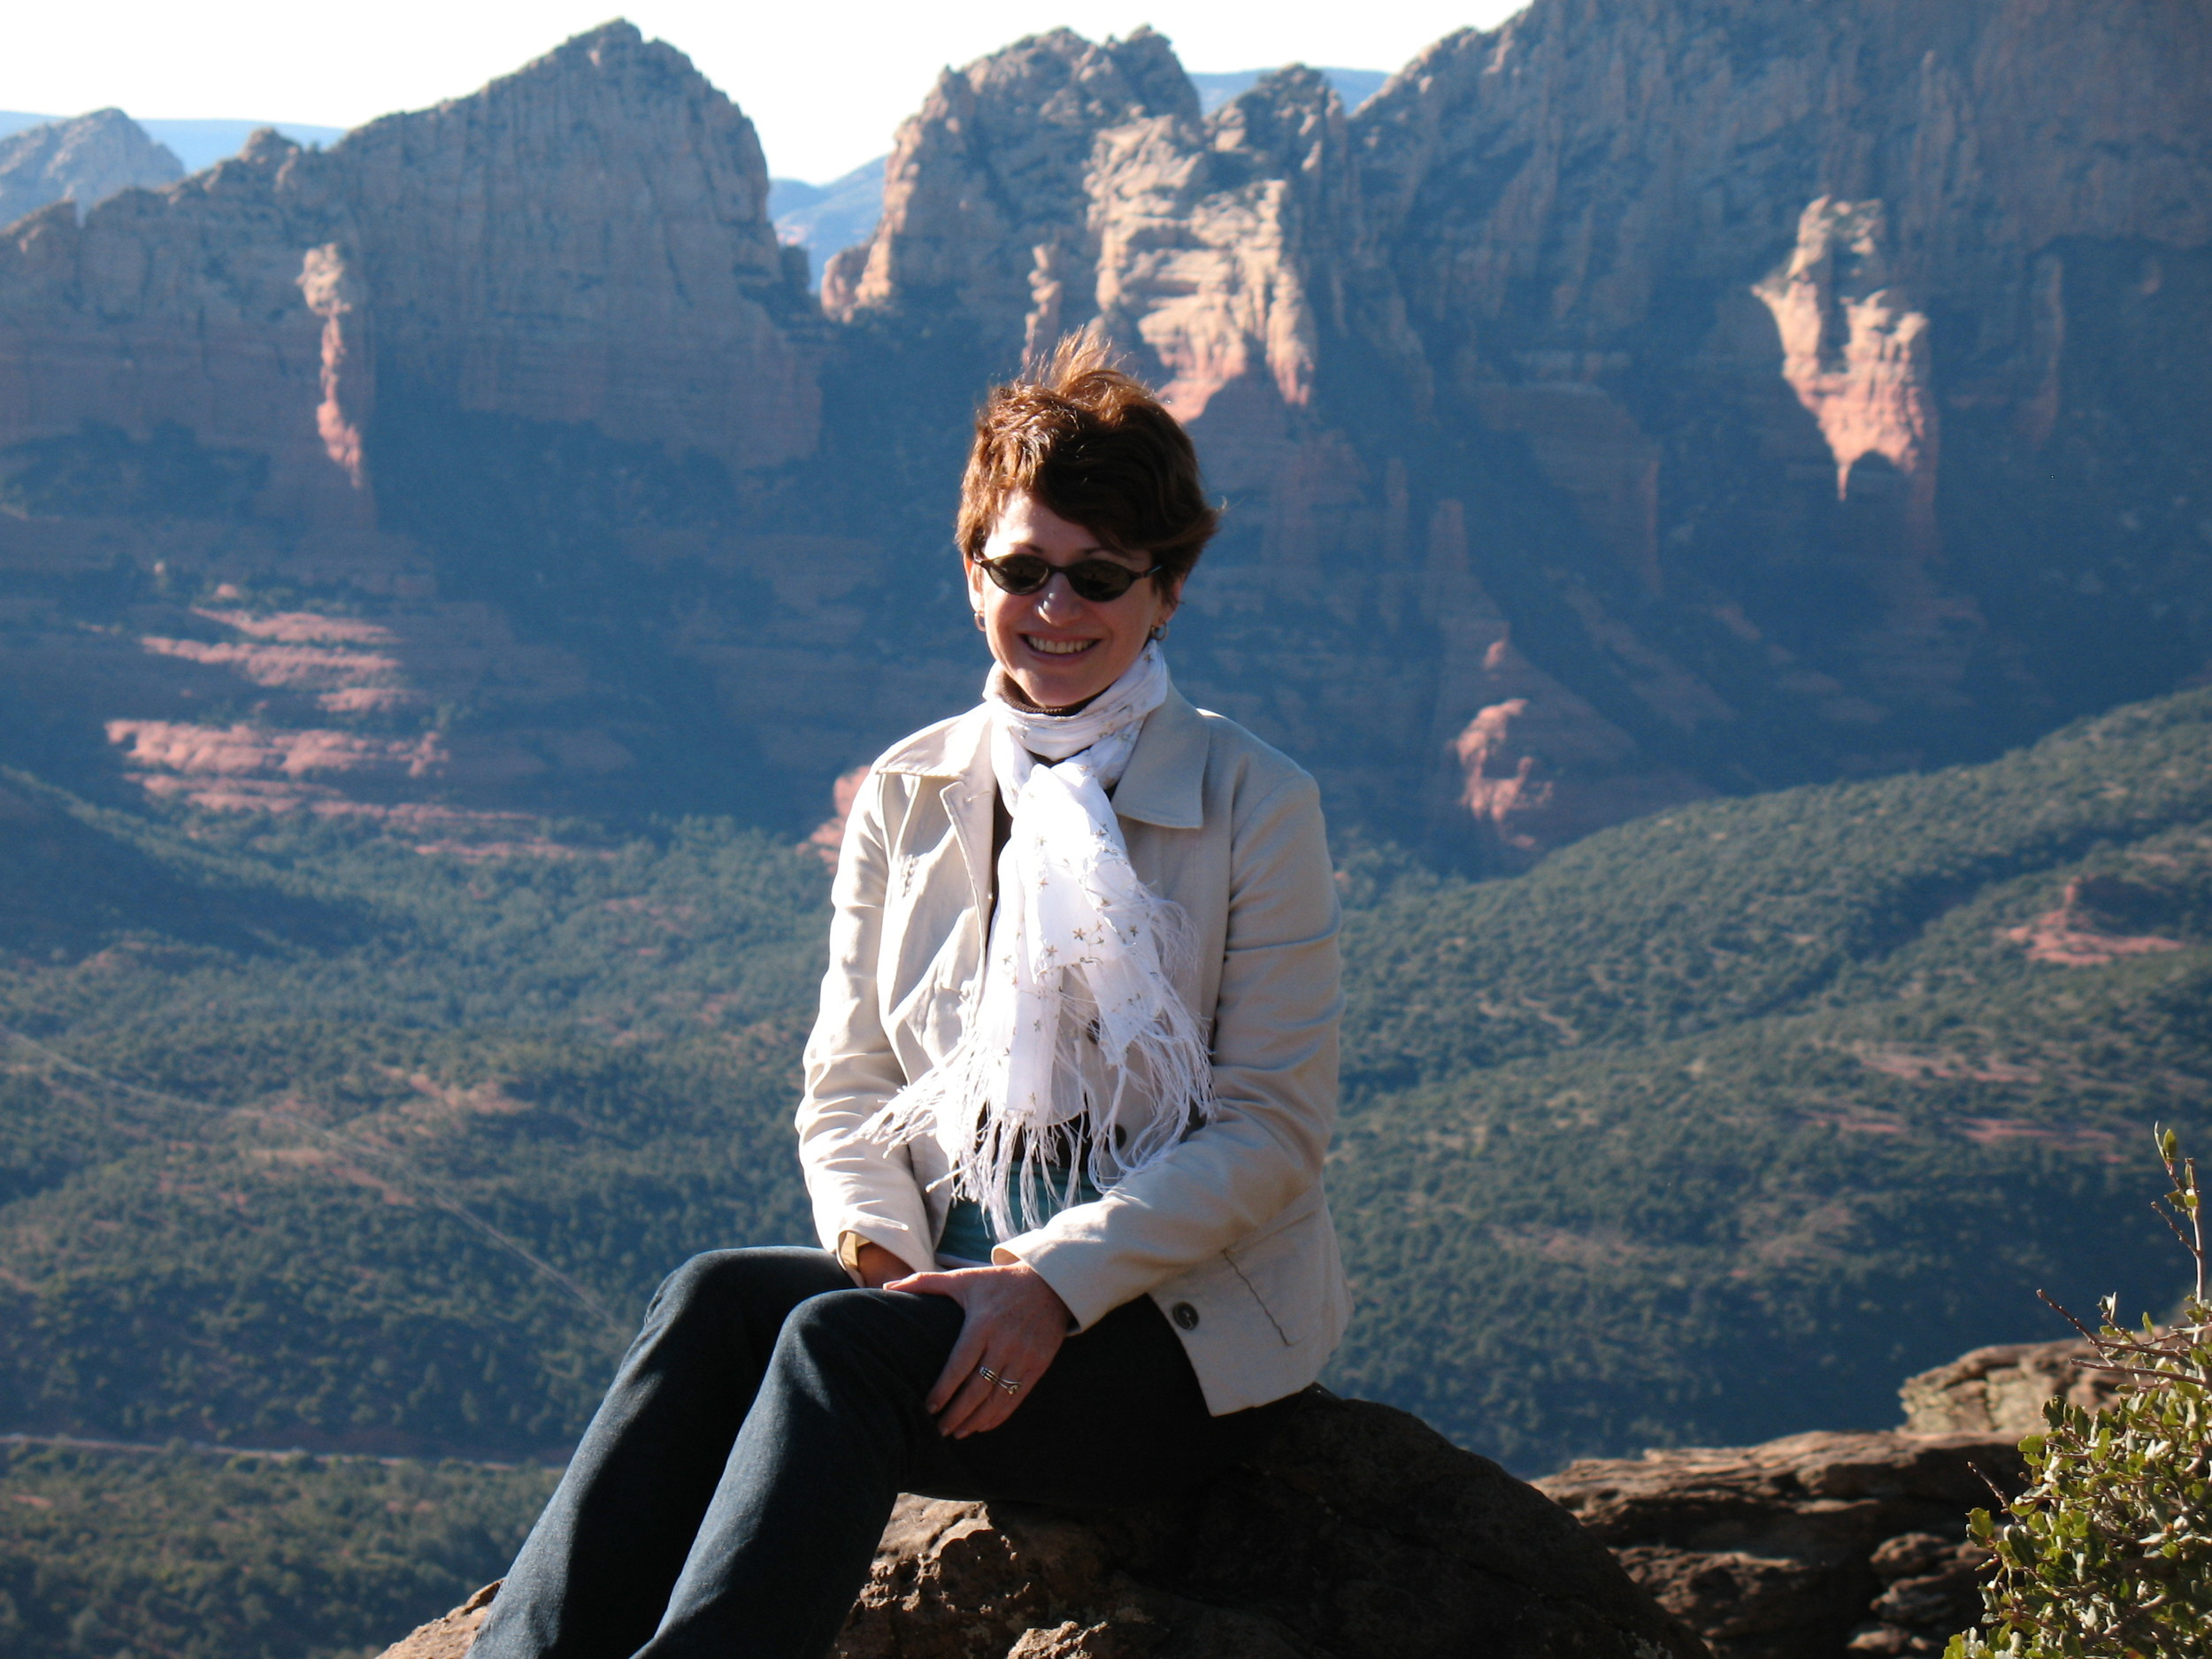 In my 'happy place' in Sedona, Arizona